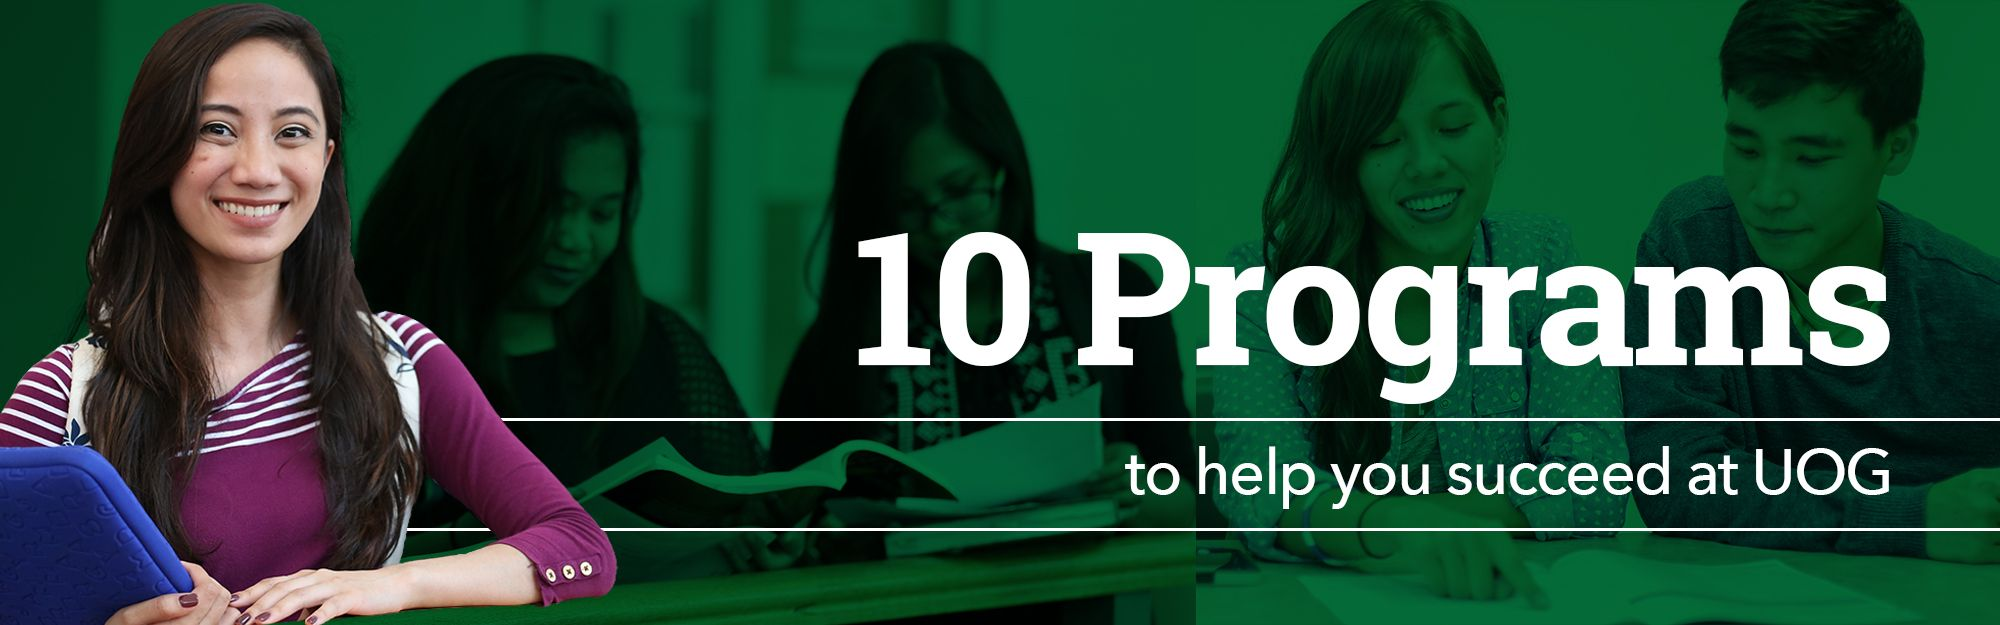 10 Programs to help you succeed at UOG